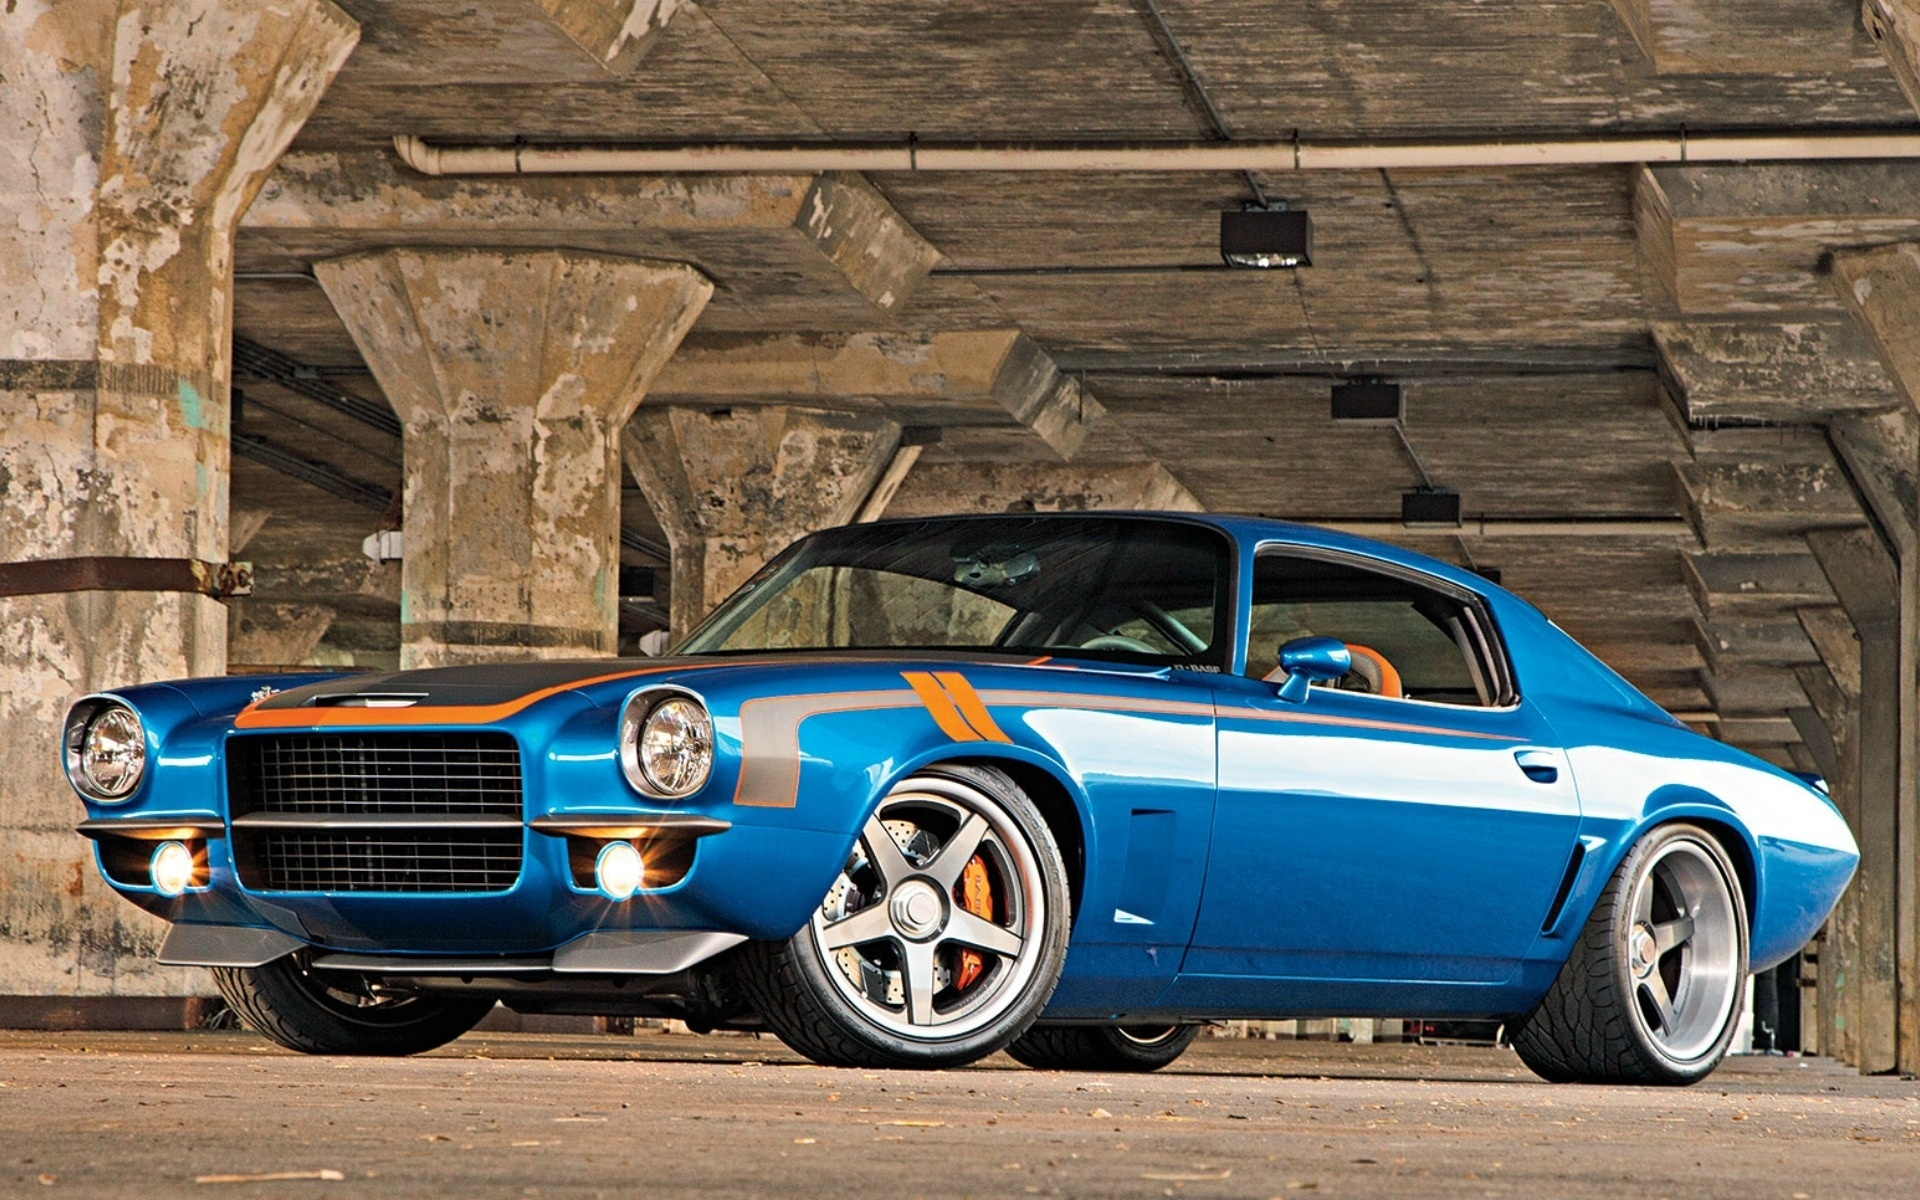 Tuning Chevrolet Camaro Hot Rod Muscle Cars Wallpaper